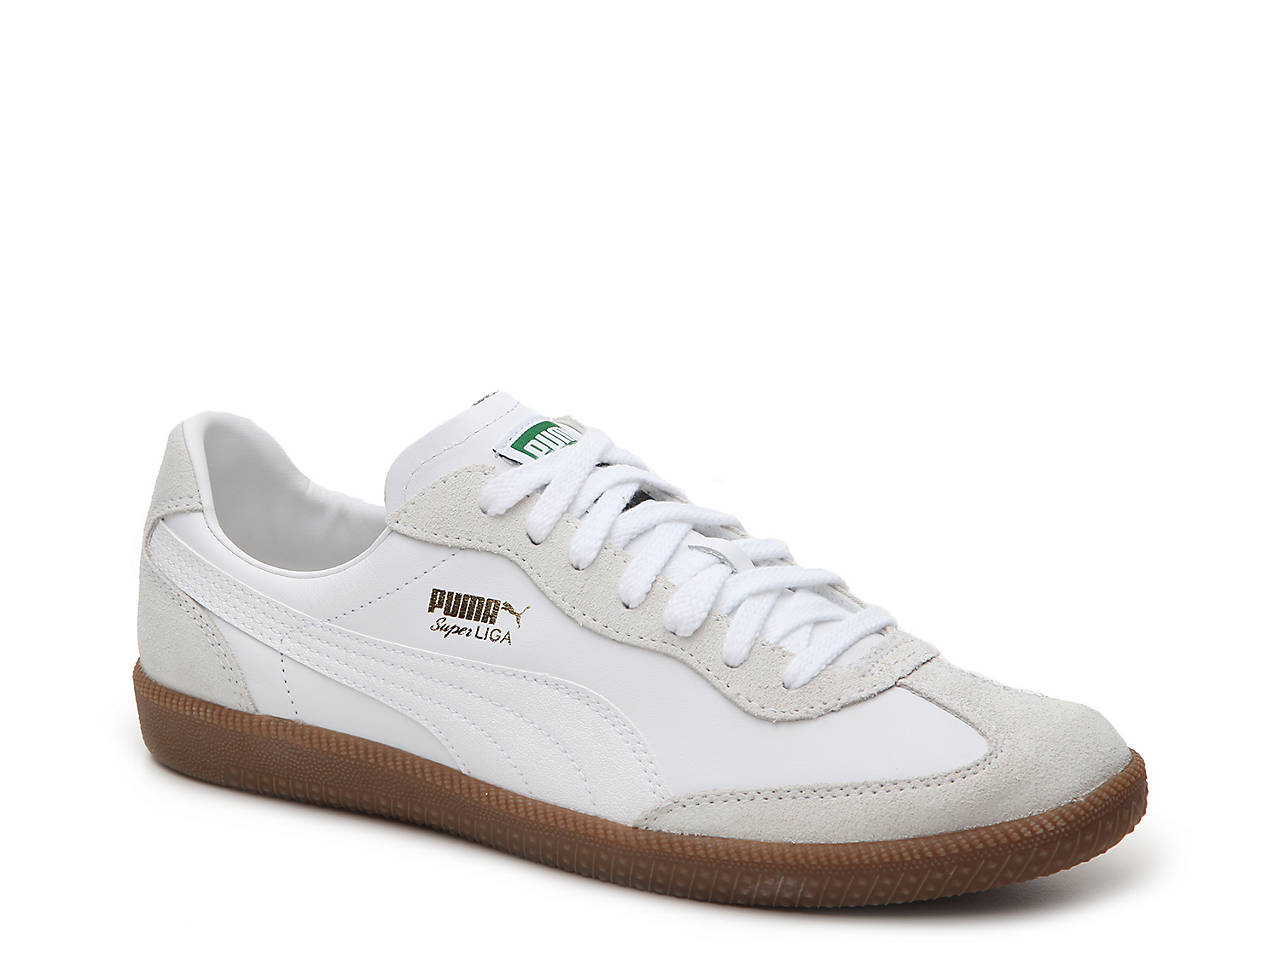 160d0c717523 Puma Super Liga OG Retro Sneaker - Men s Men s Shoes